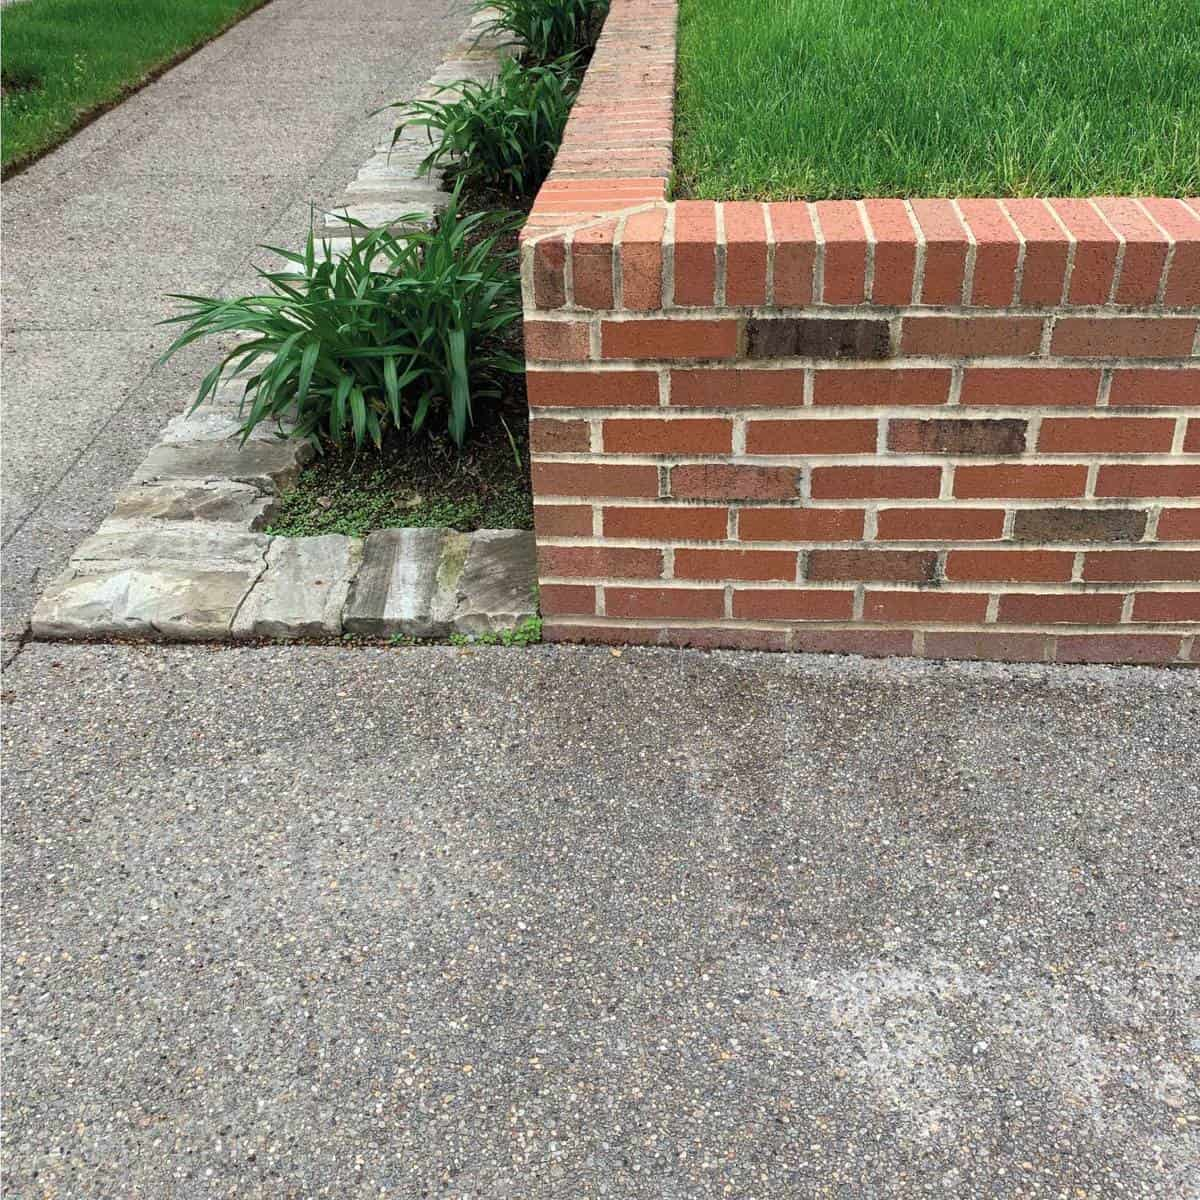 Brick wall with nice landscaping